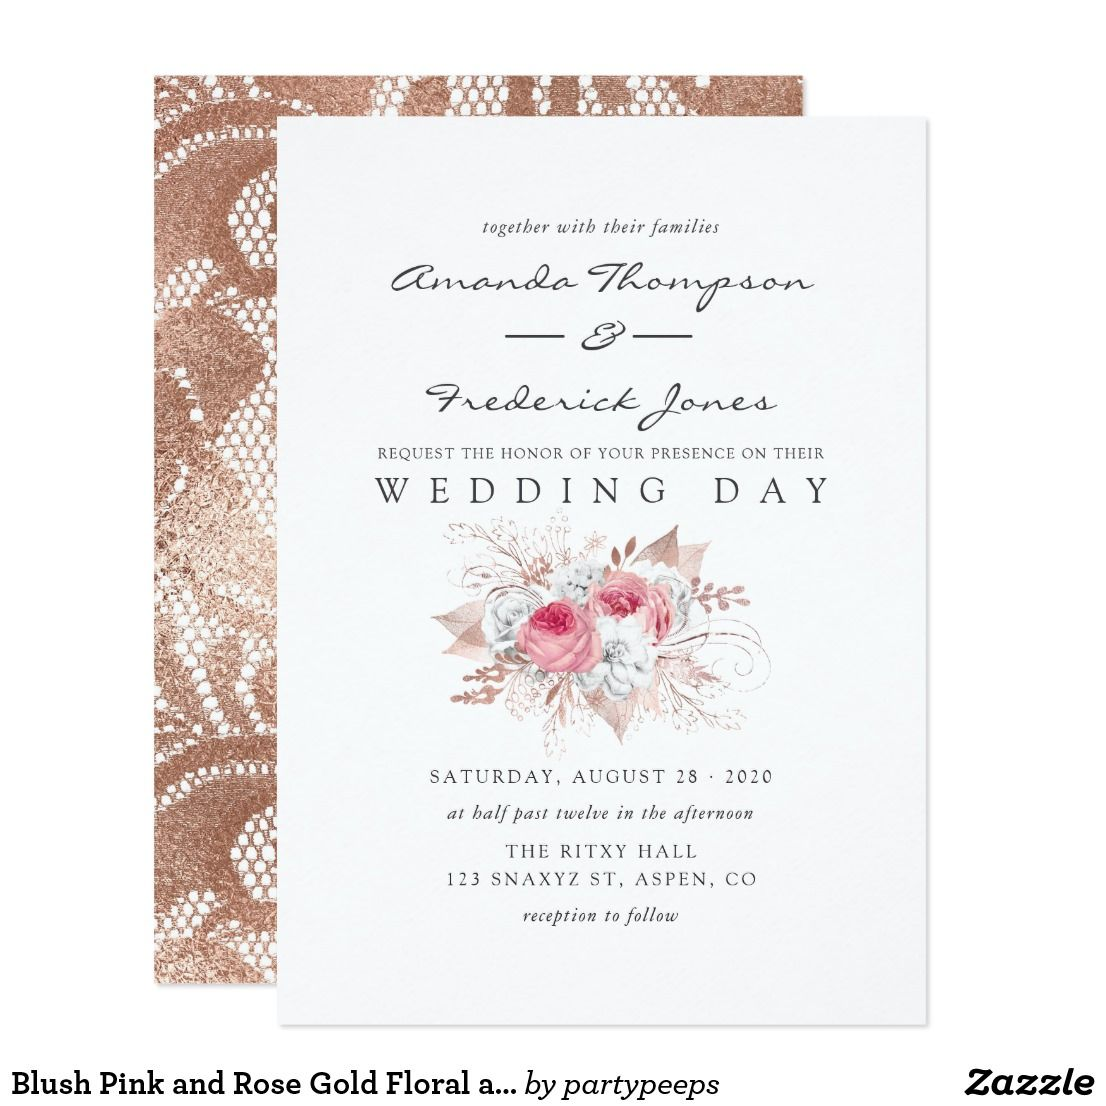 Blush Pink And Rose Gold Floral And Lace Wedding Invitation Zazzle Com Lace Wedding Invitations Typography Wedding Invitations Wedding Invitations